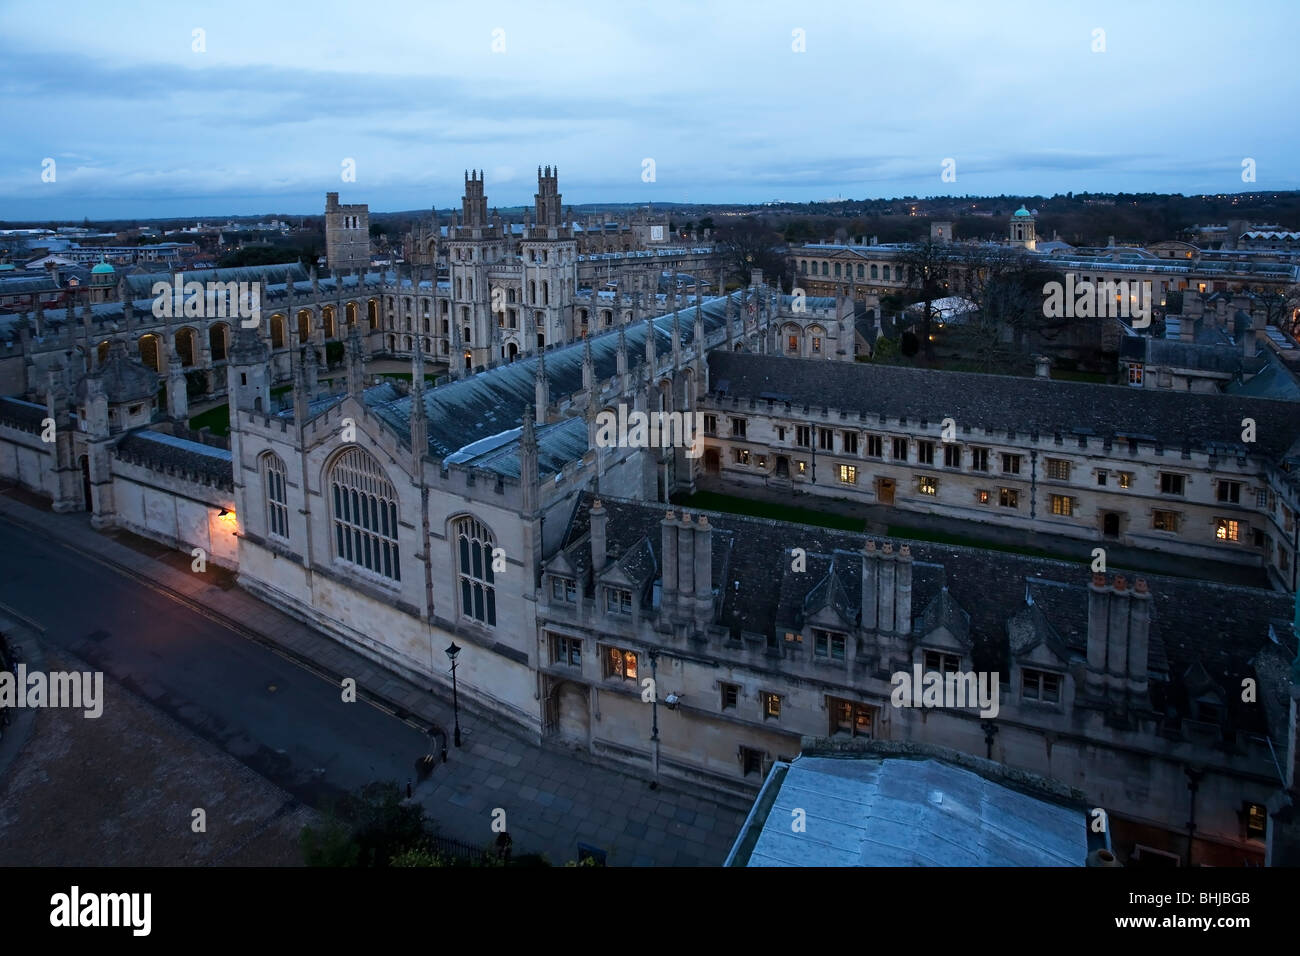 View of All Souls College and Radcliffe Square from St Mary's Church Steeple, Oxford, Uk Stock Photo